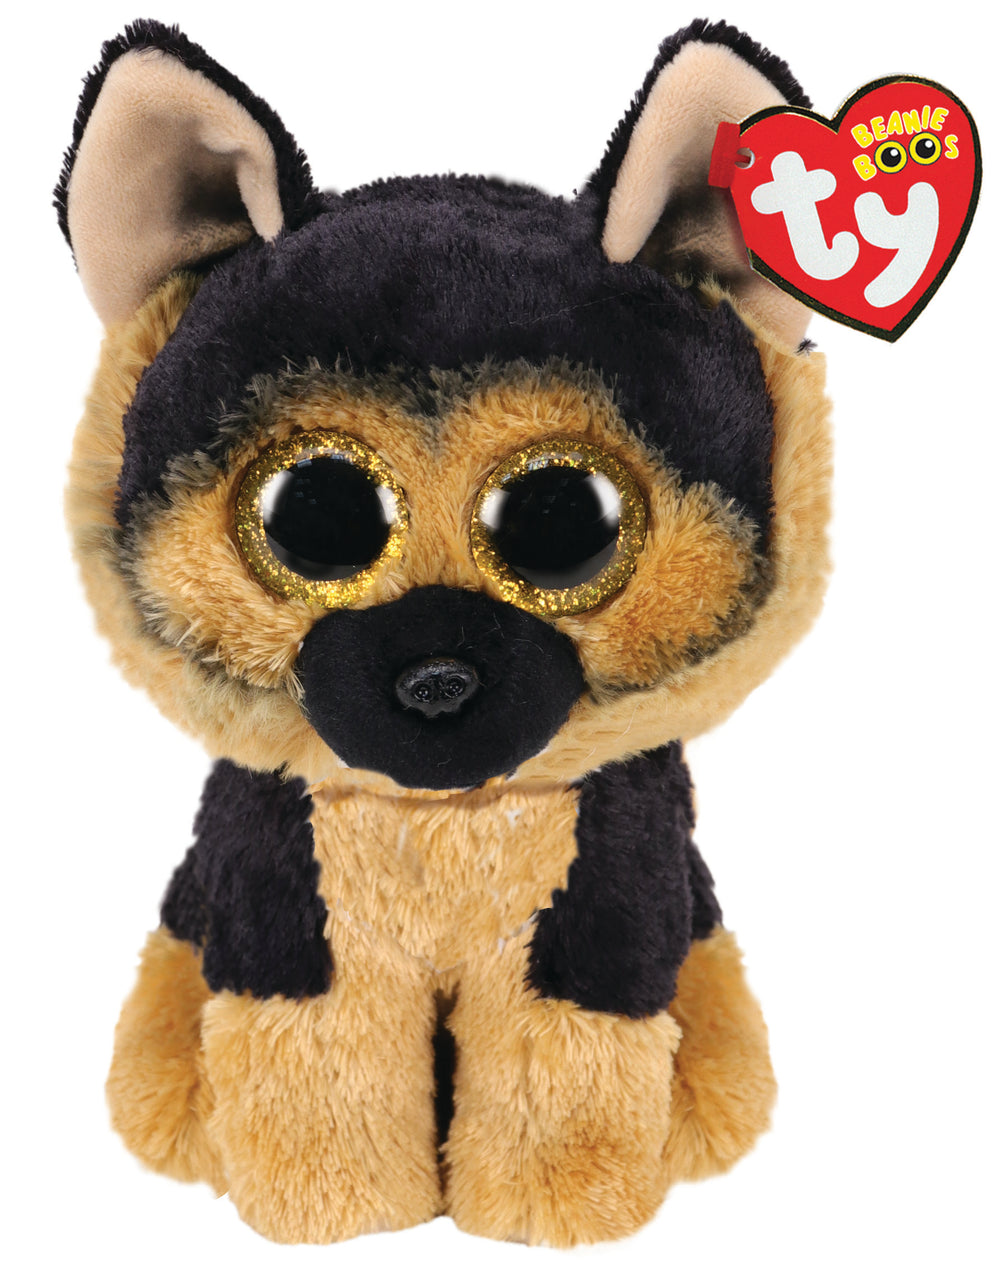 German Shepherd Beanie Boo